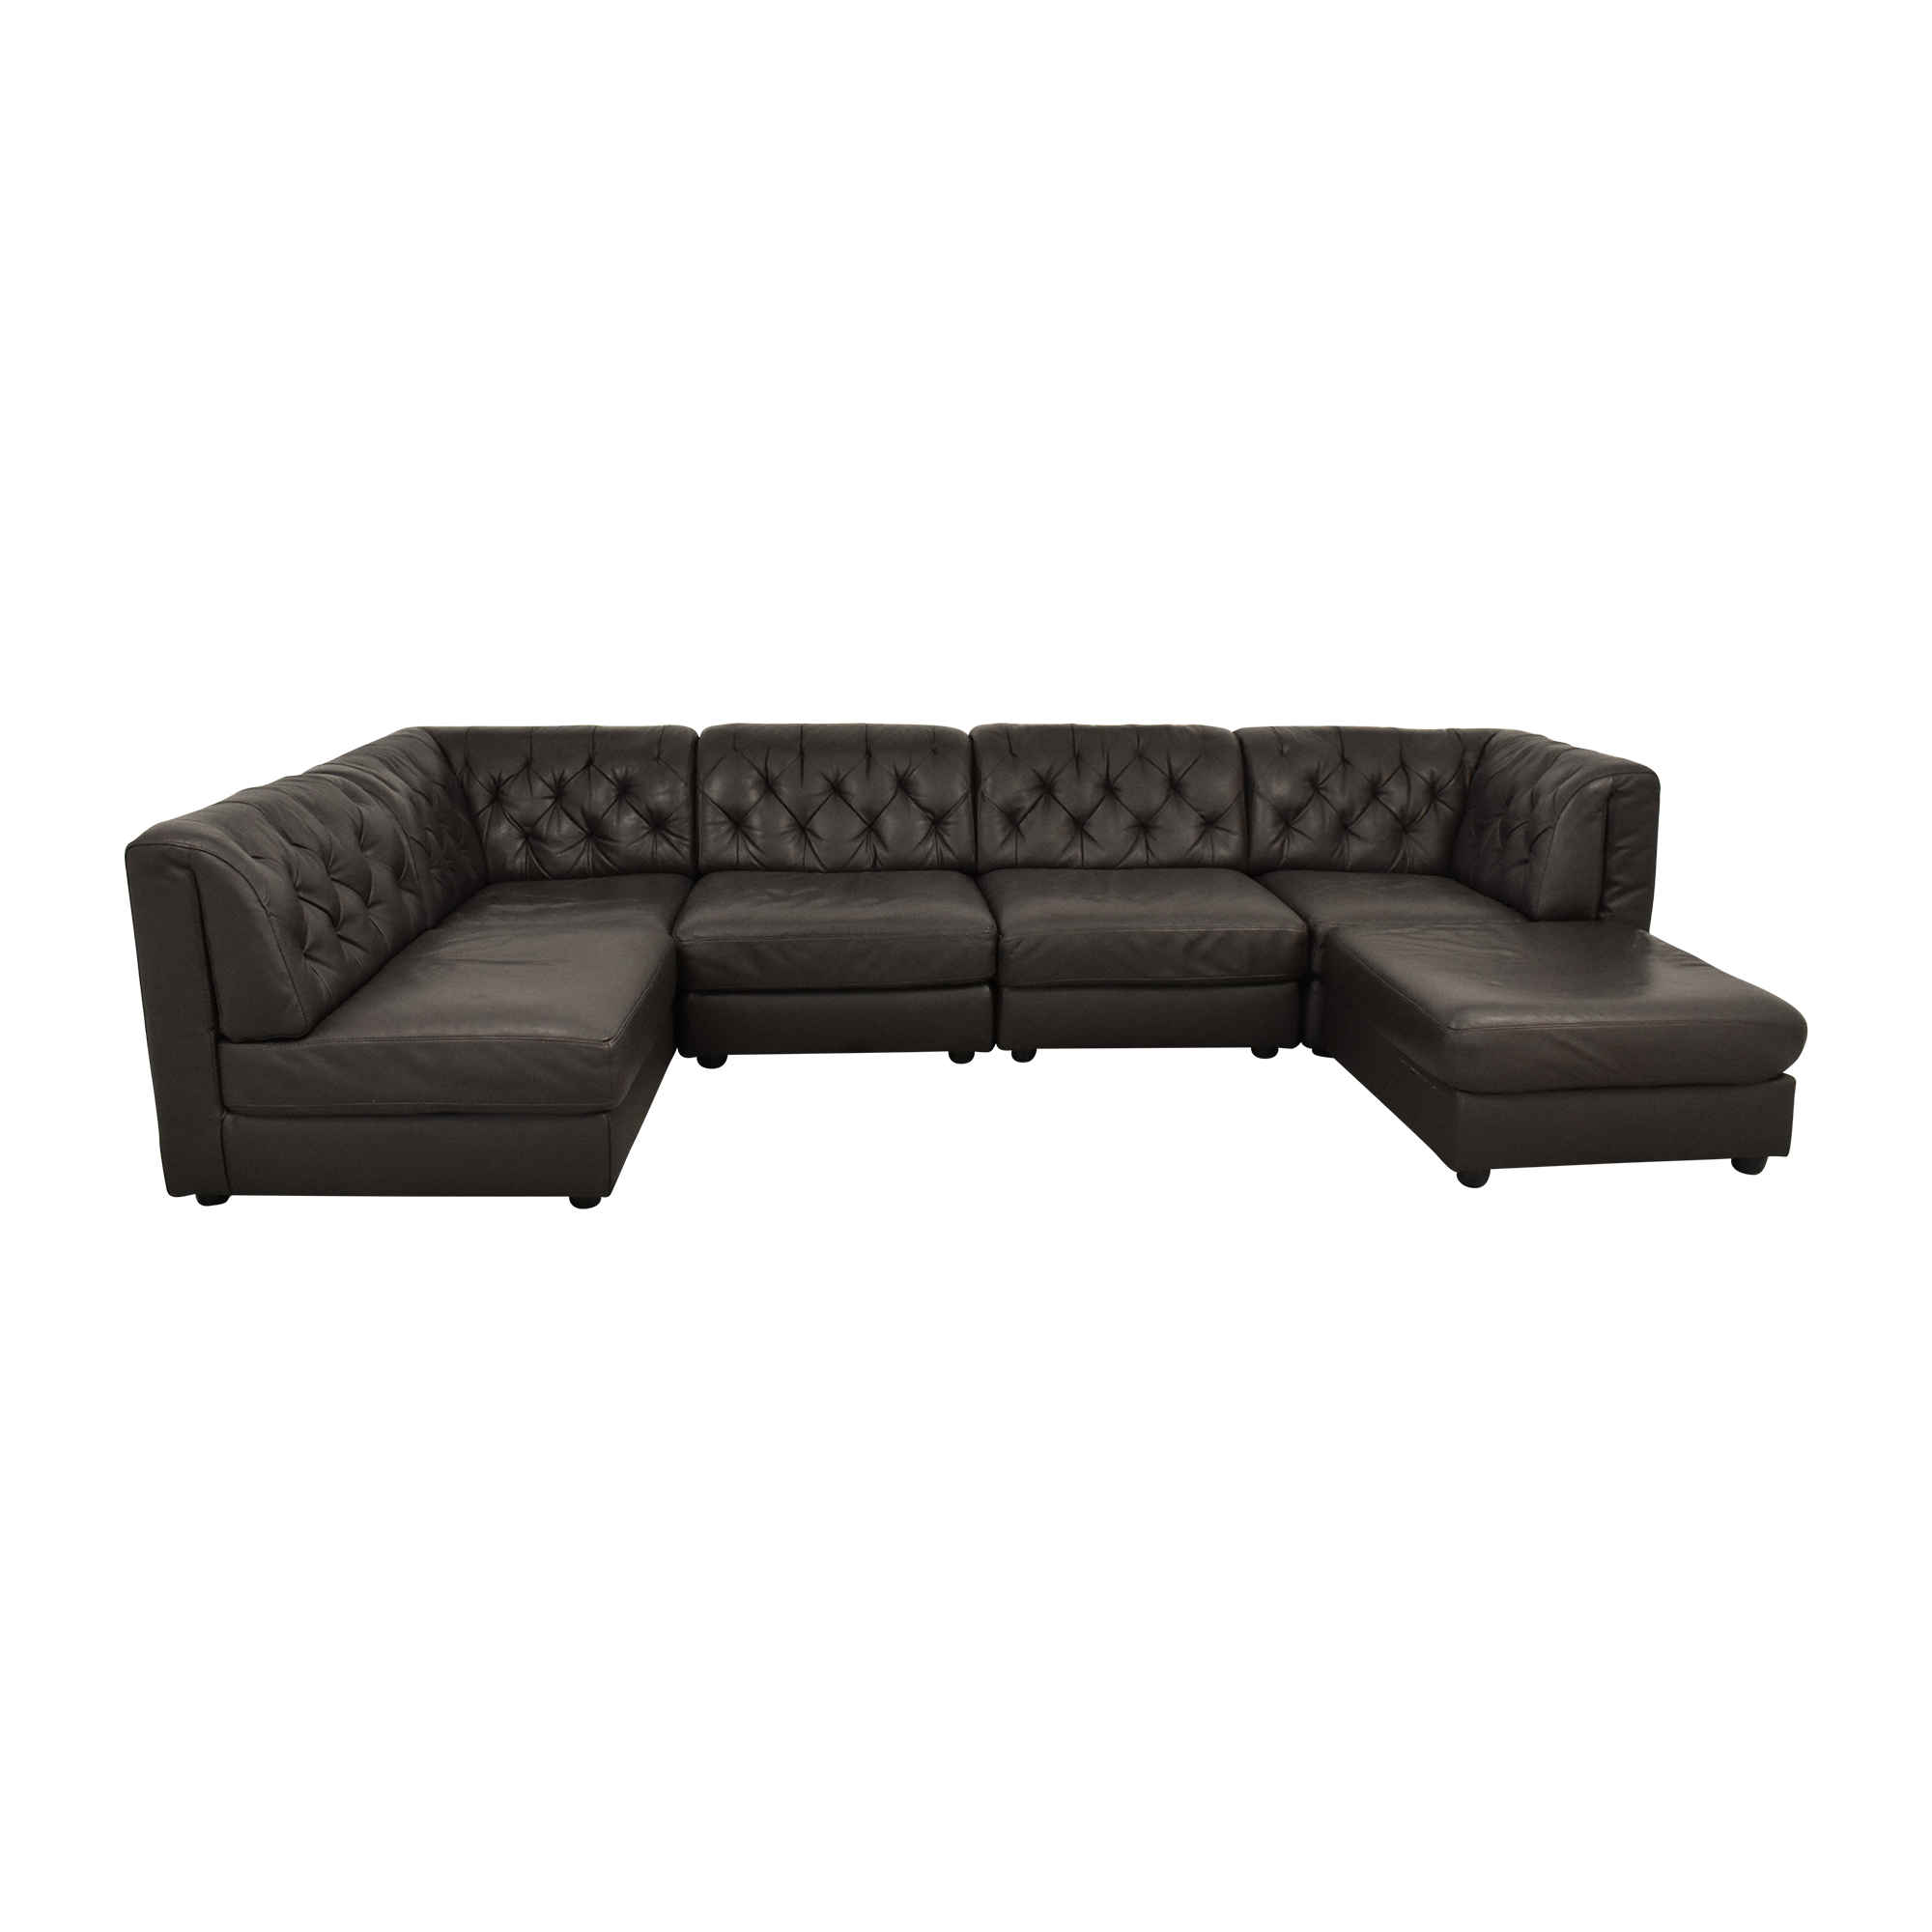 Natuzzi Natuzzi Tufted Corner Sectional with Ottoman dimensions